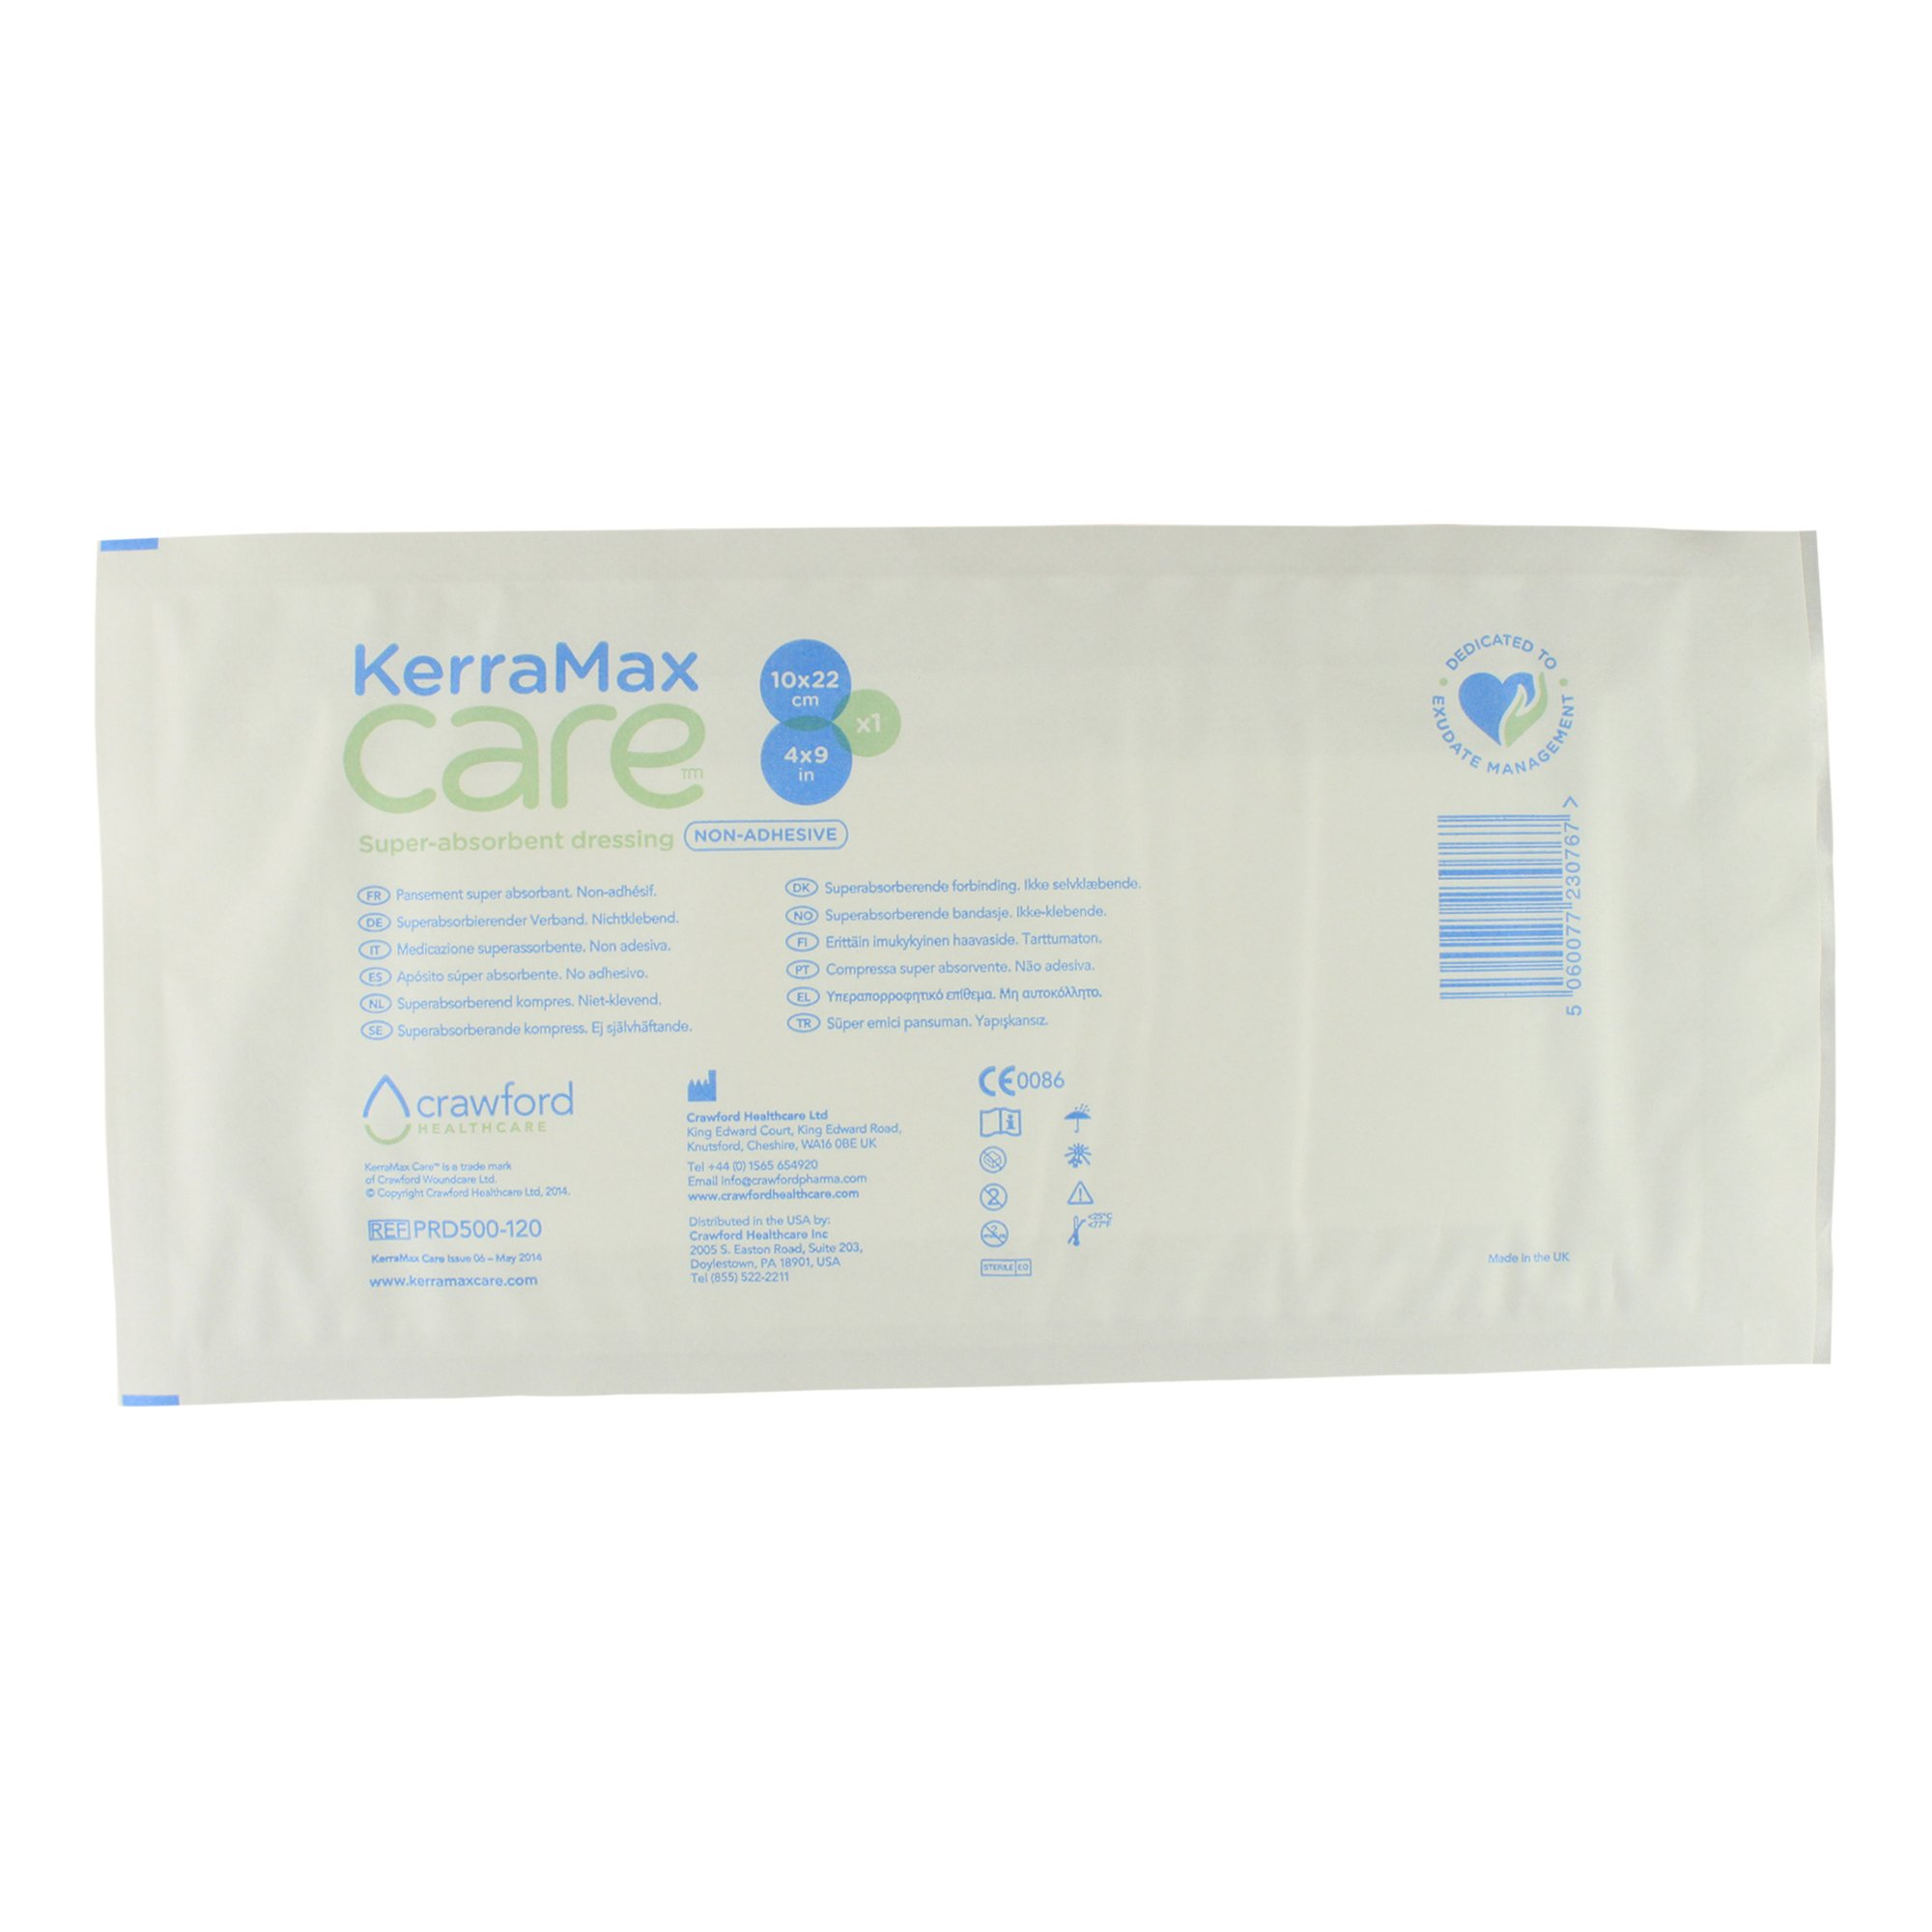 KerraMax Care 4''x9'' Super Absorbent Wound Dressing (PRD500-120) – Absorbs Exudate and Isolates it, Preventing Leaks or Drips for Improved Patient Comfort and Wound Care Treatment (1 Each)